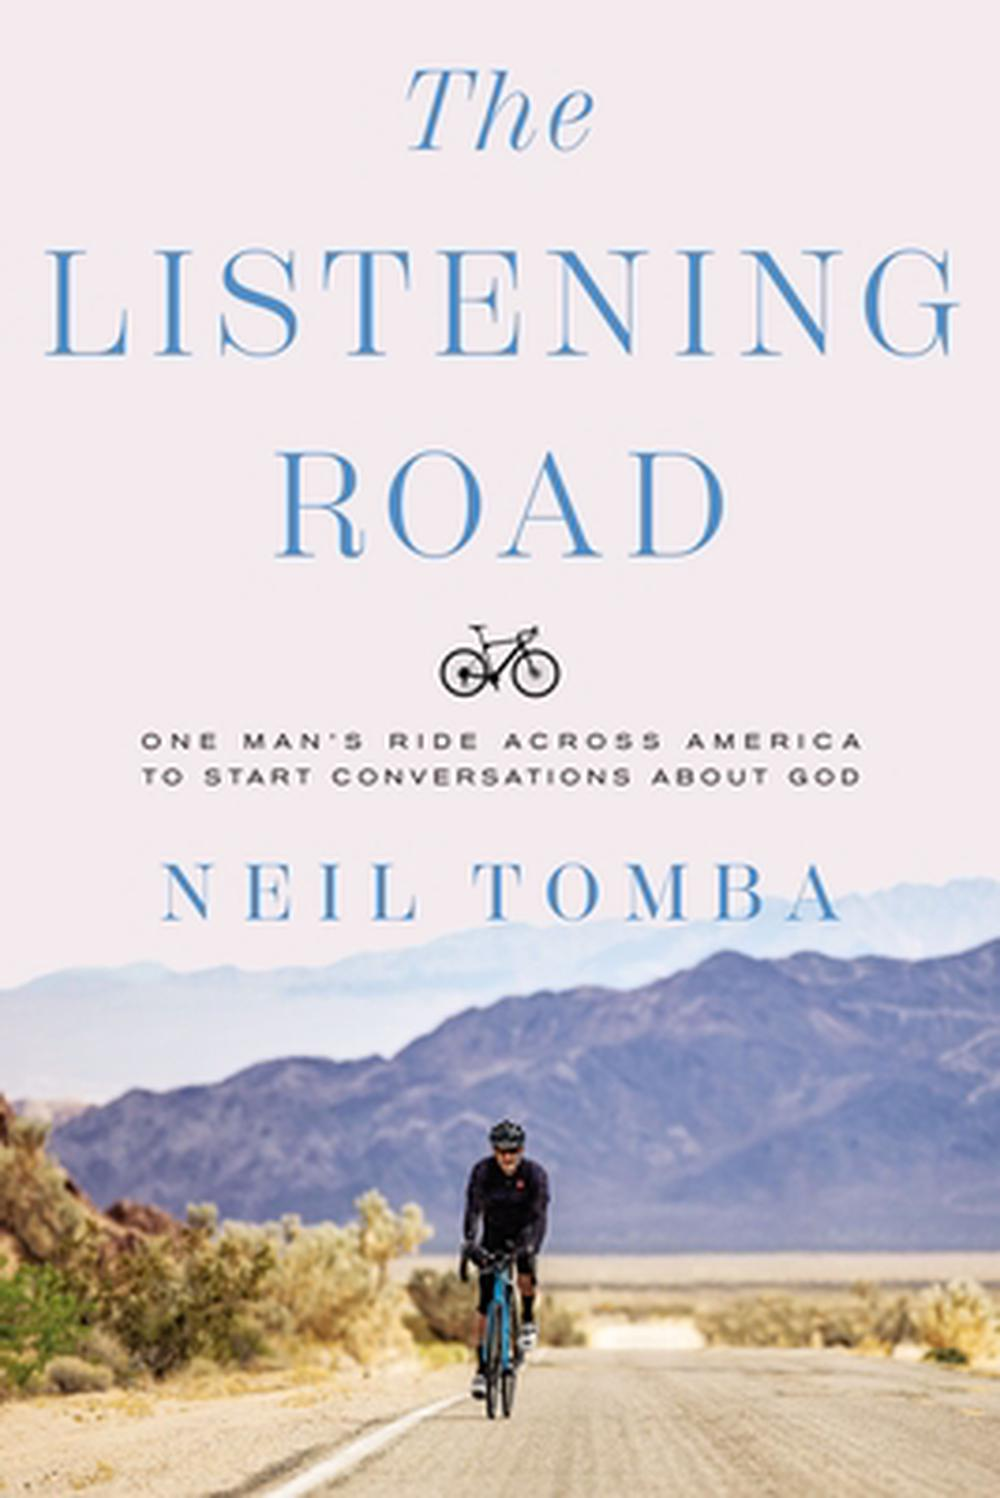 The Listening Road: One Man's Ride Across America To Start ConversationsAbout God